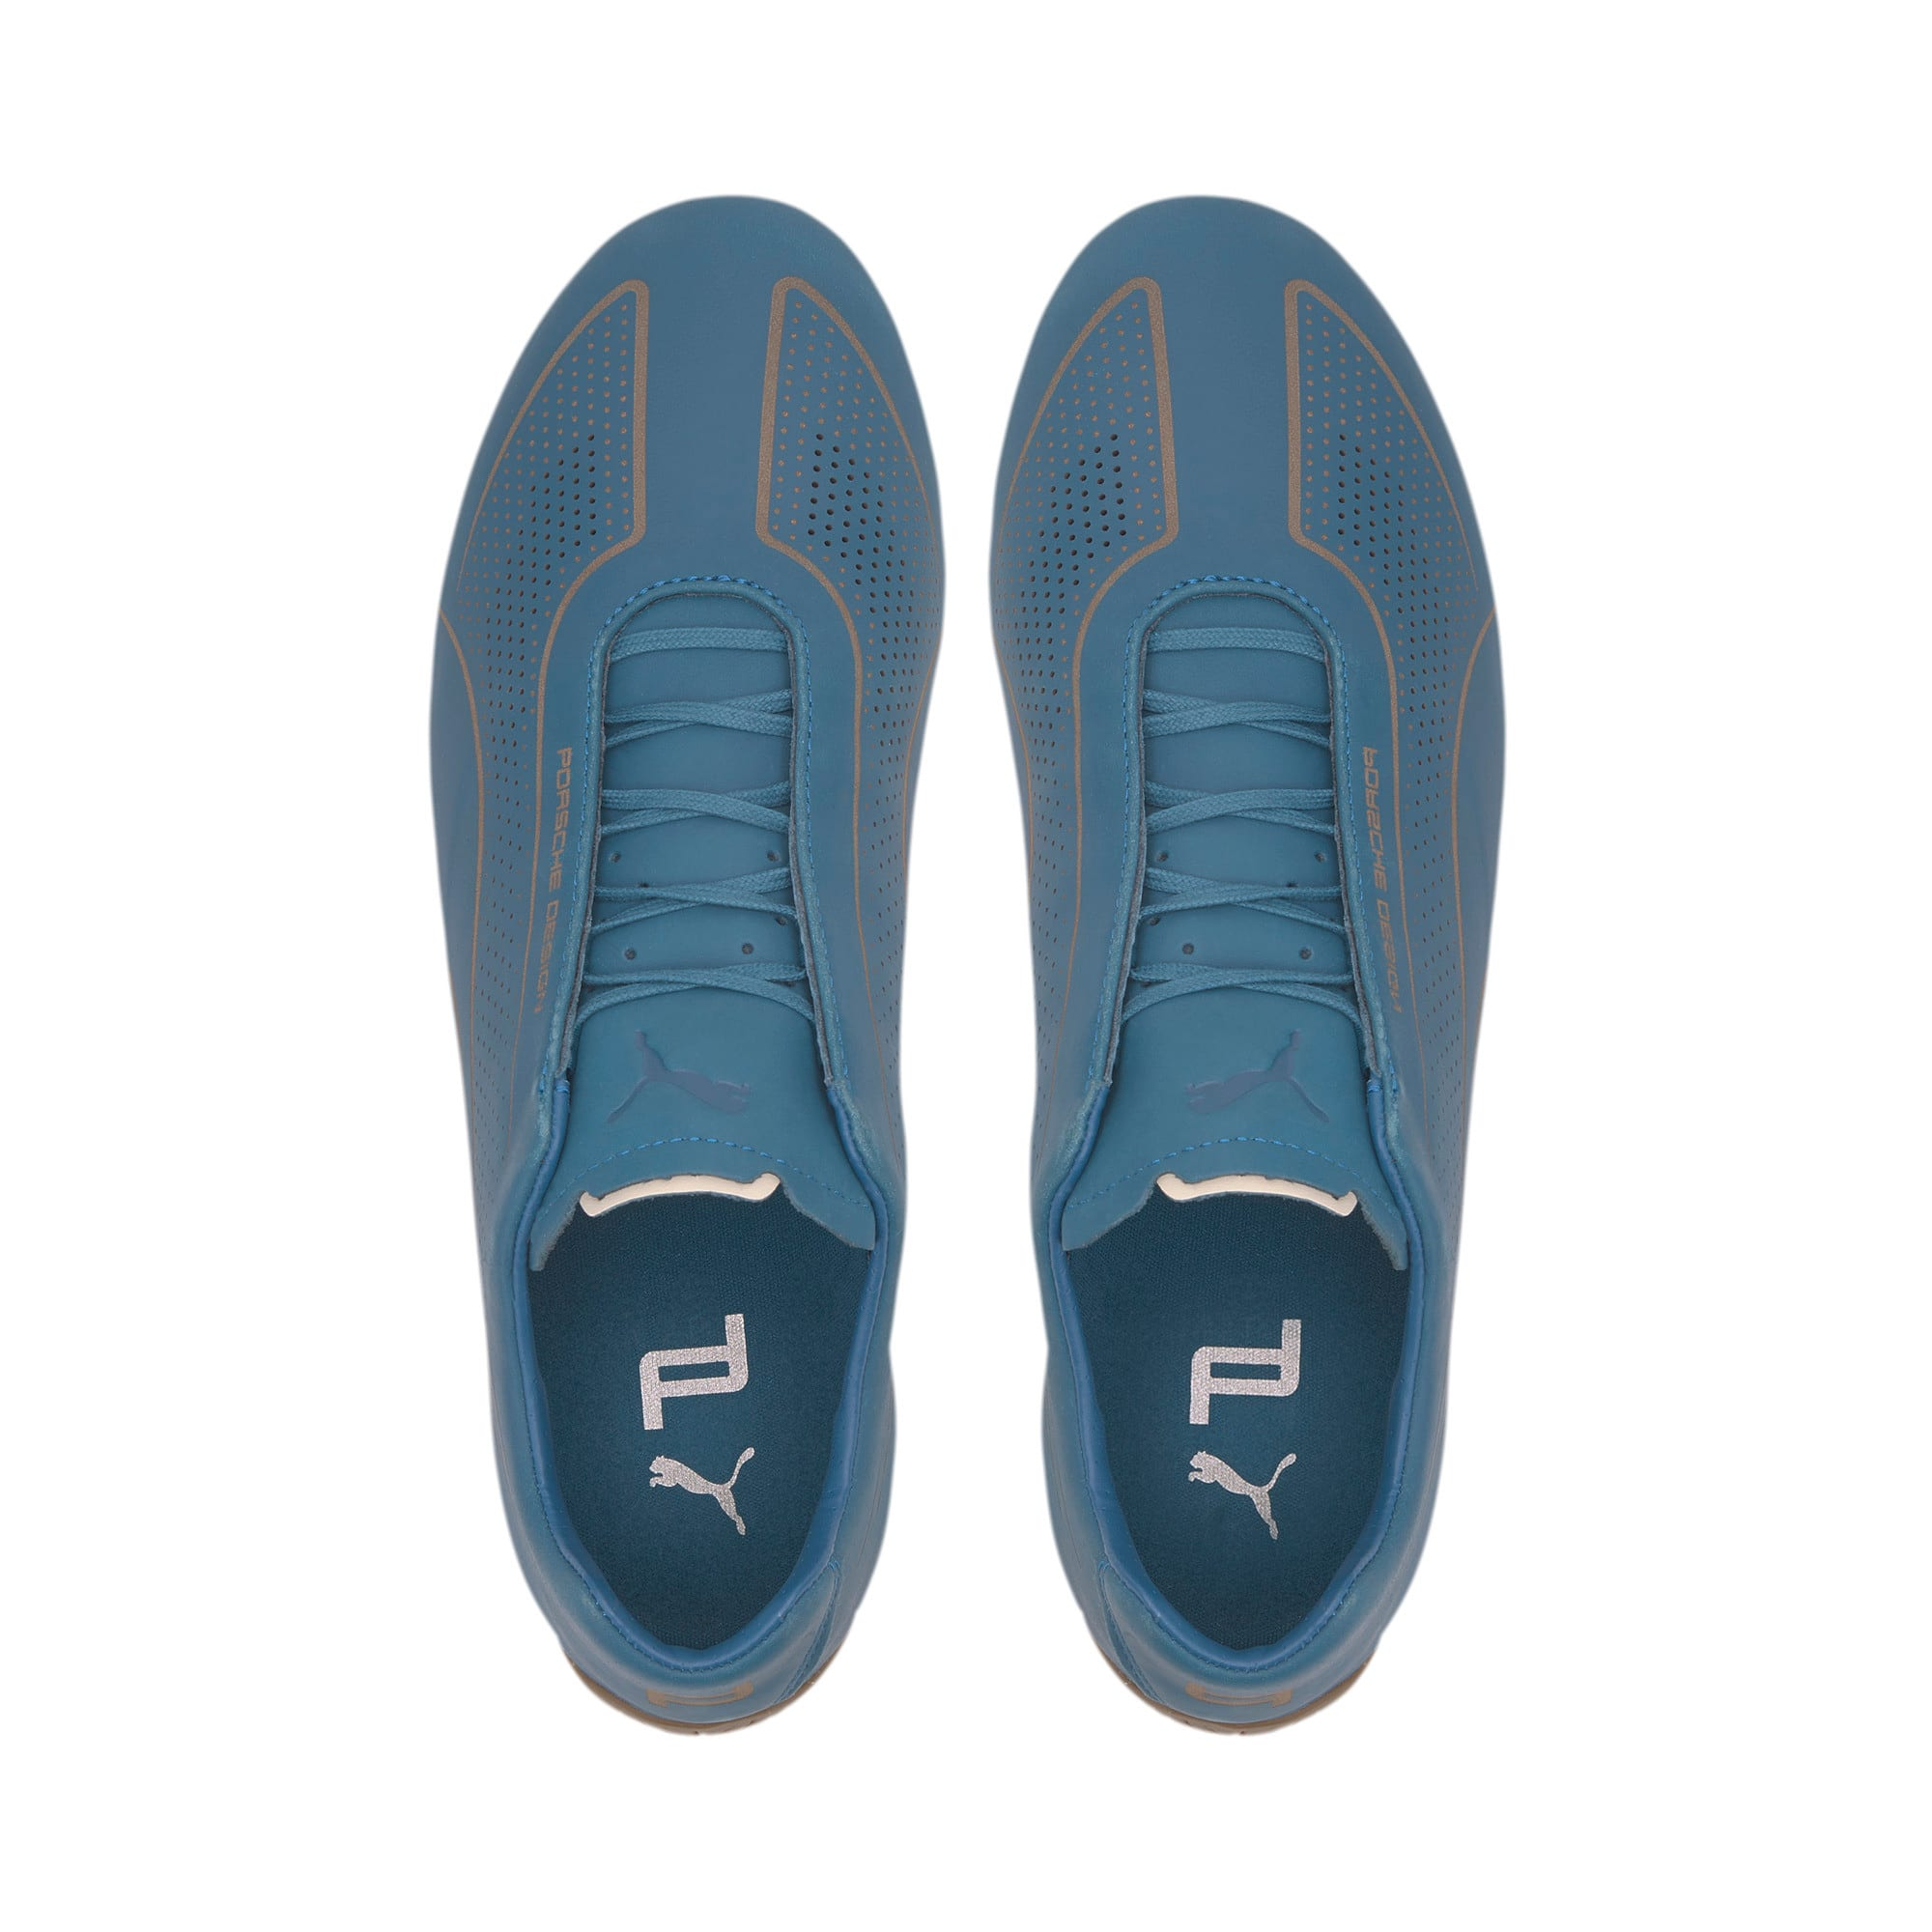 Thumbnail 6 of Porsche Design Speedcat Lux Nubuck Men's Shoes, Moroccan Blue-Moroccan Blue, medium